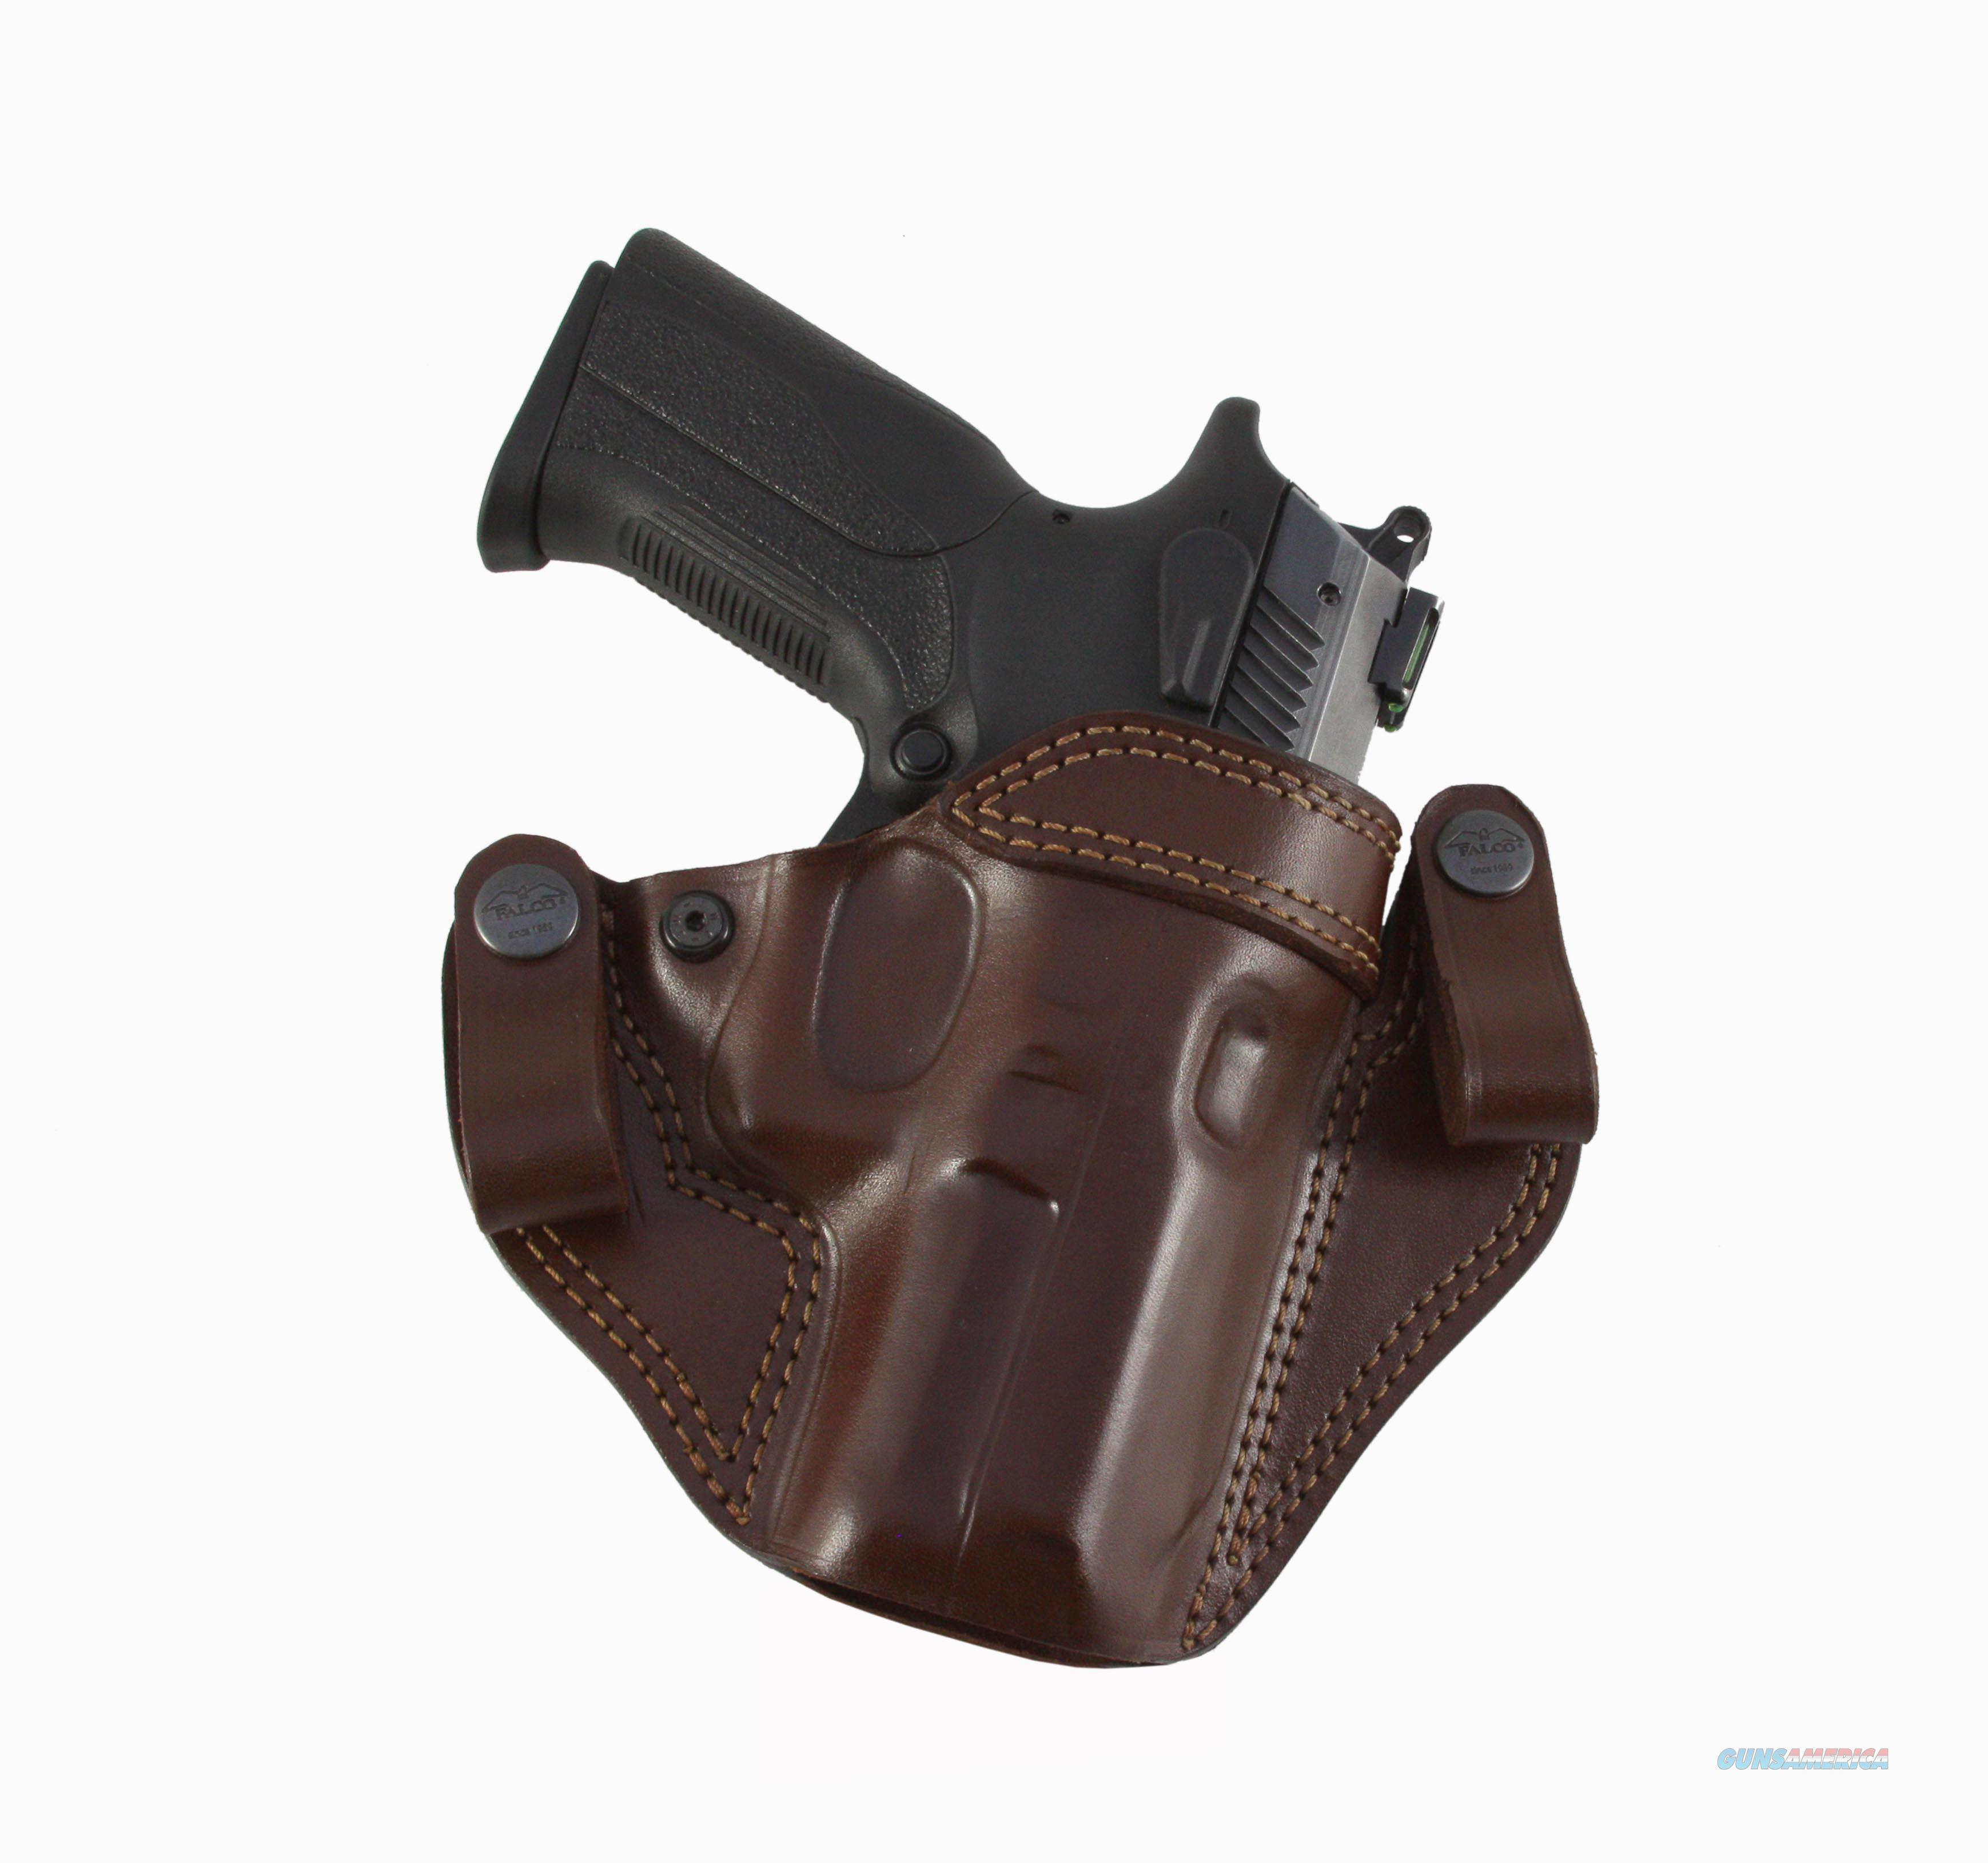 IWB Holster for Concealed Gun Carry  Glock 17, 22, 31, 37  Non-Guns > Holsters and Gunleather > Concealed Carry